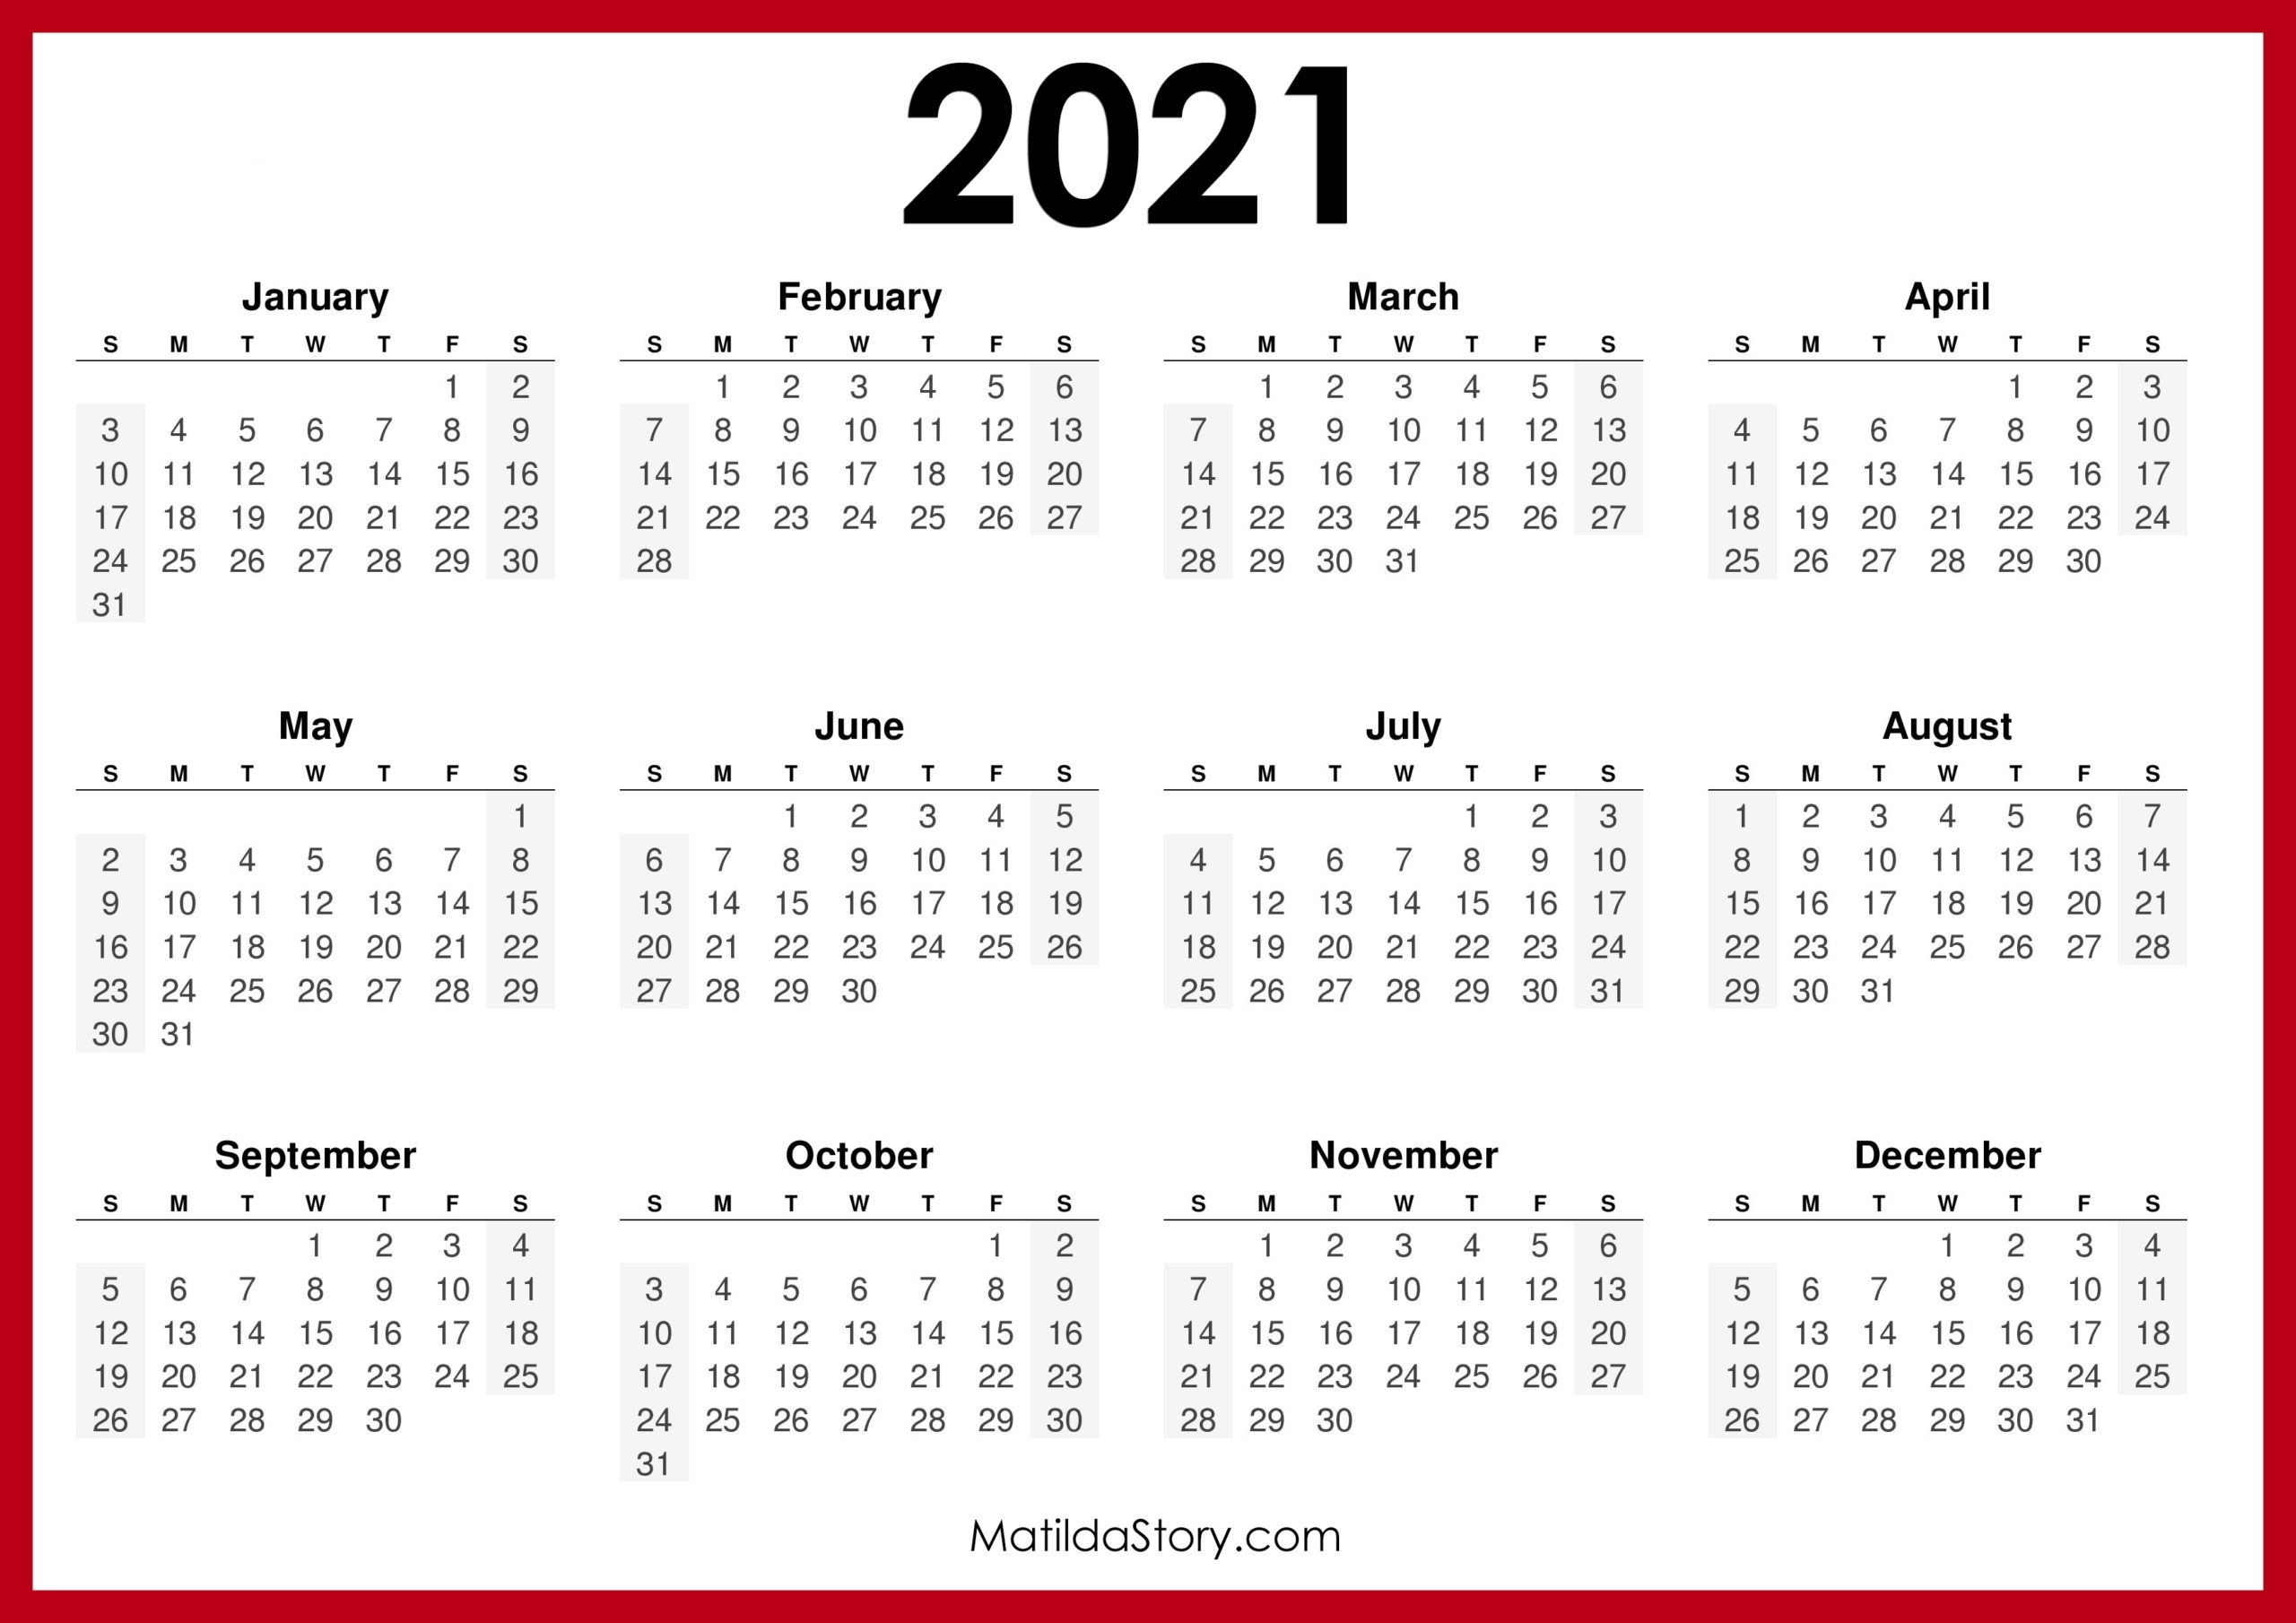 2021 Printable Free Calendar, Horizontal, Red - Sunday Start, Hd - Matildastory